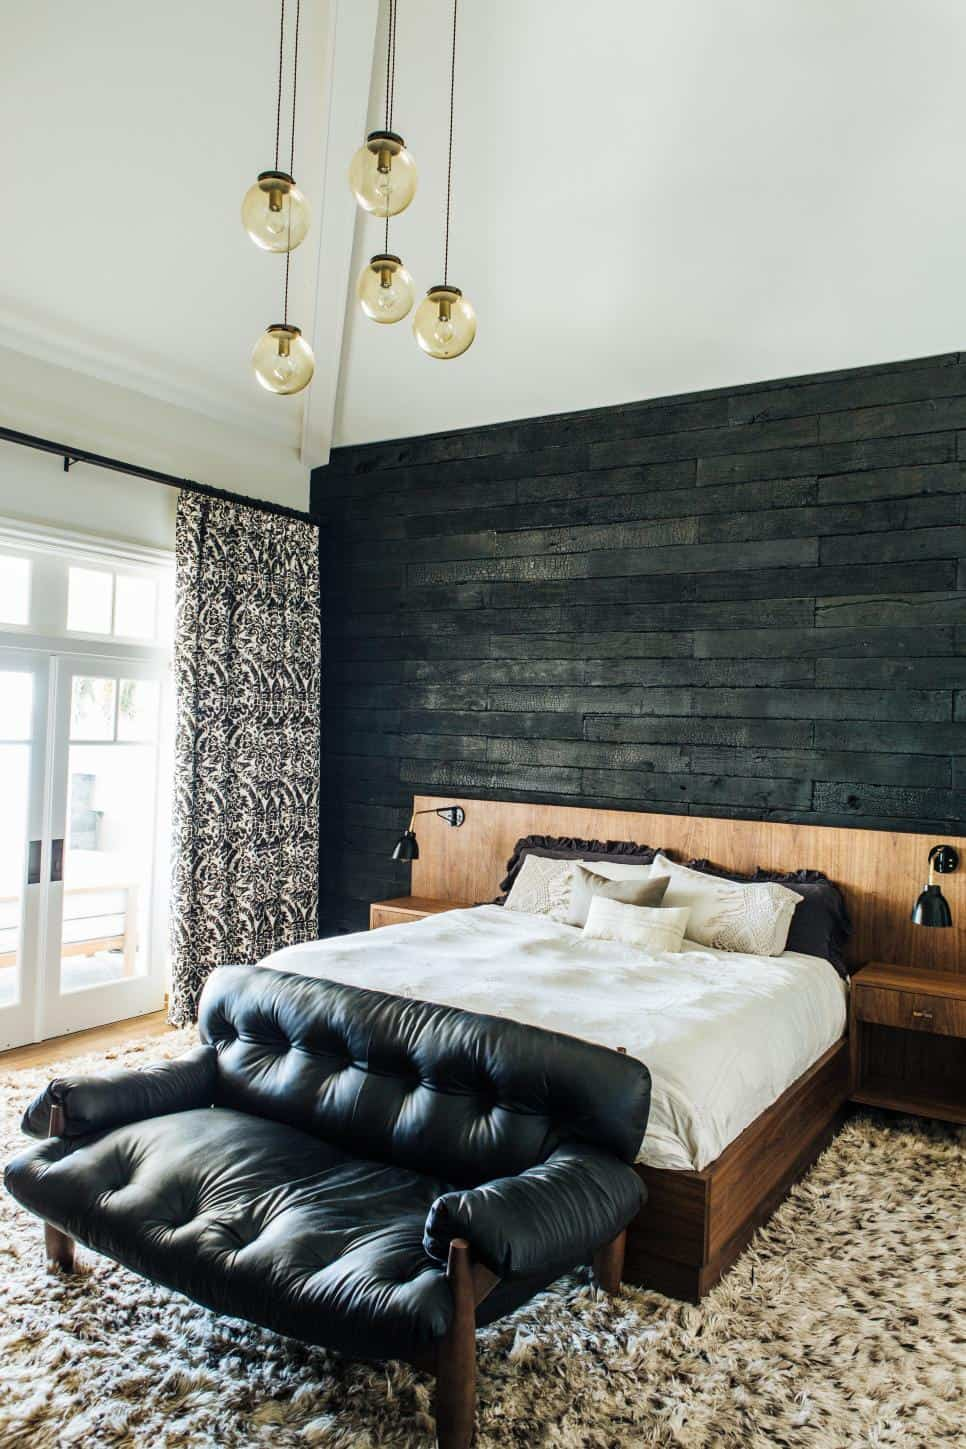 17 Extraordinary Graphic Ways to Use Wood Walls Indoors (1)